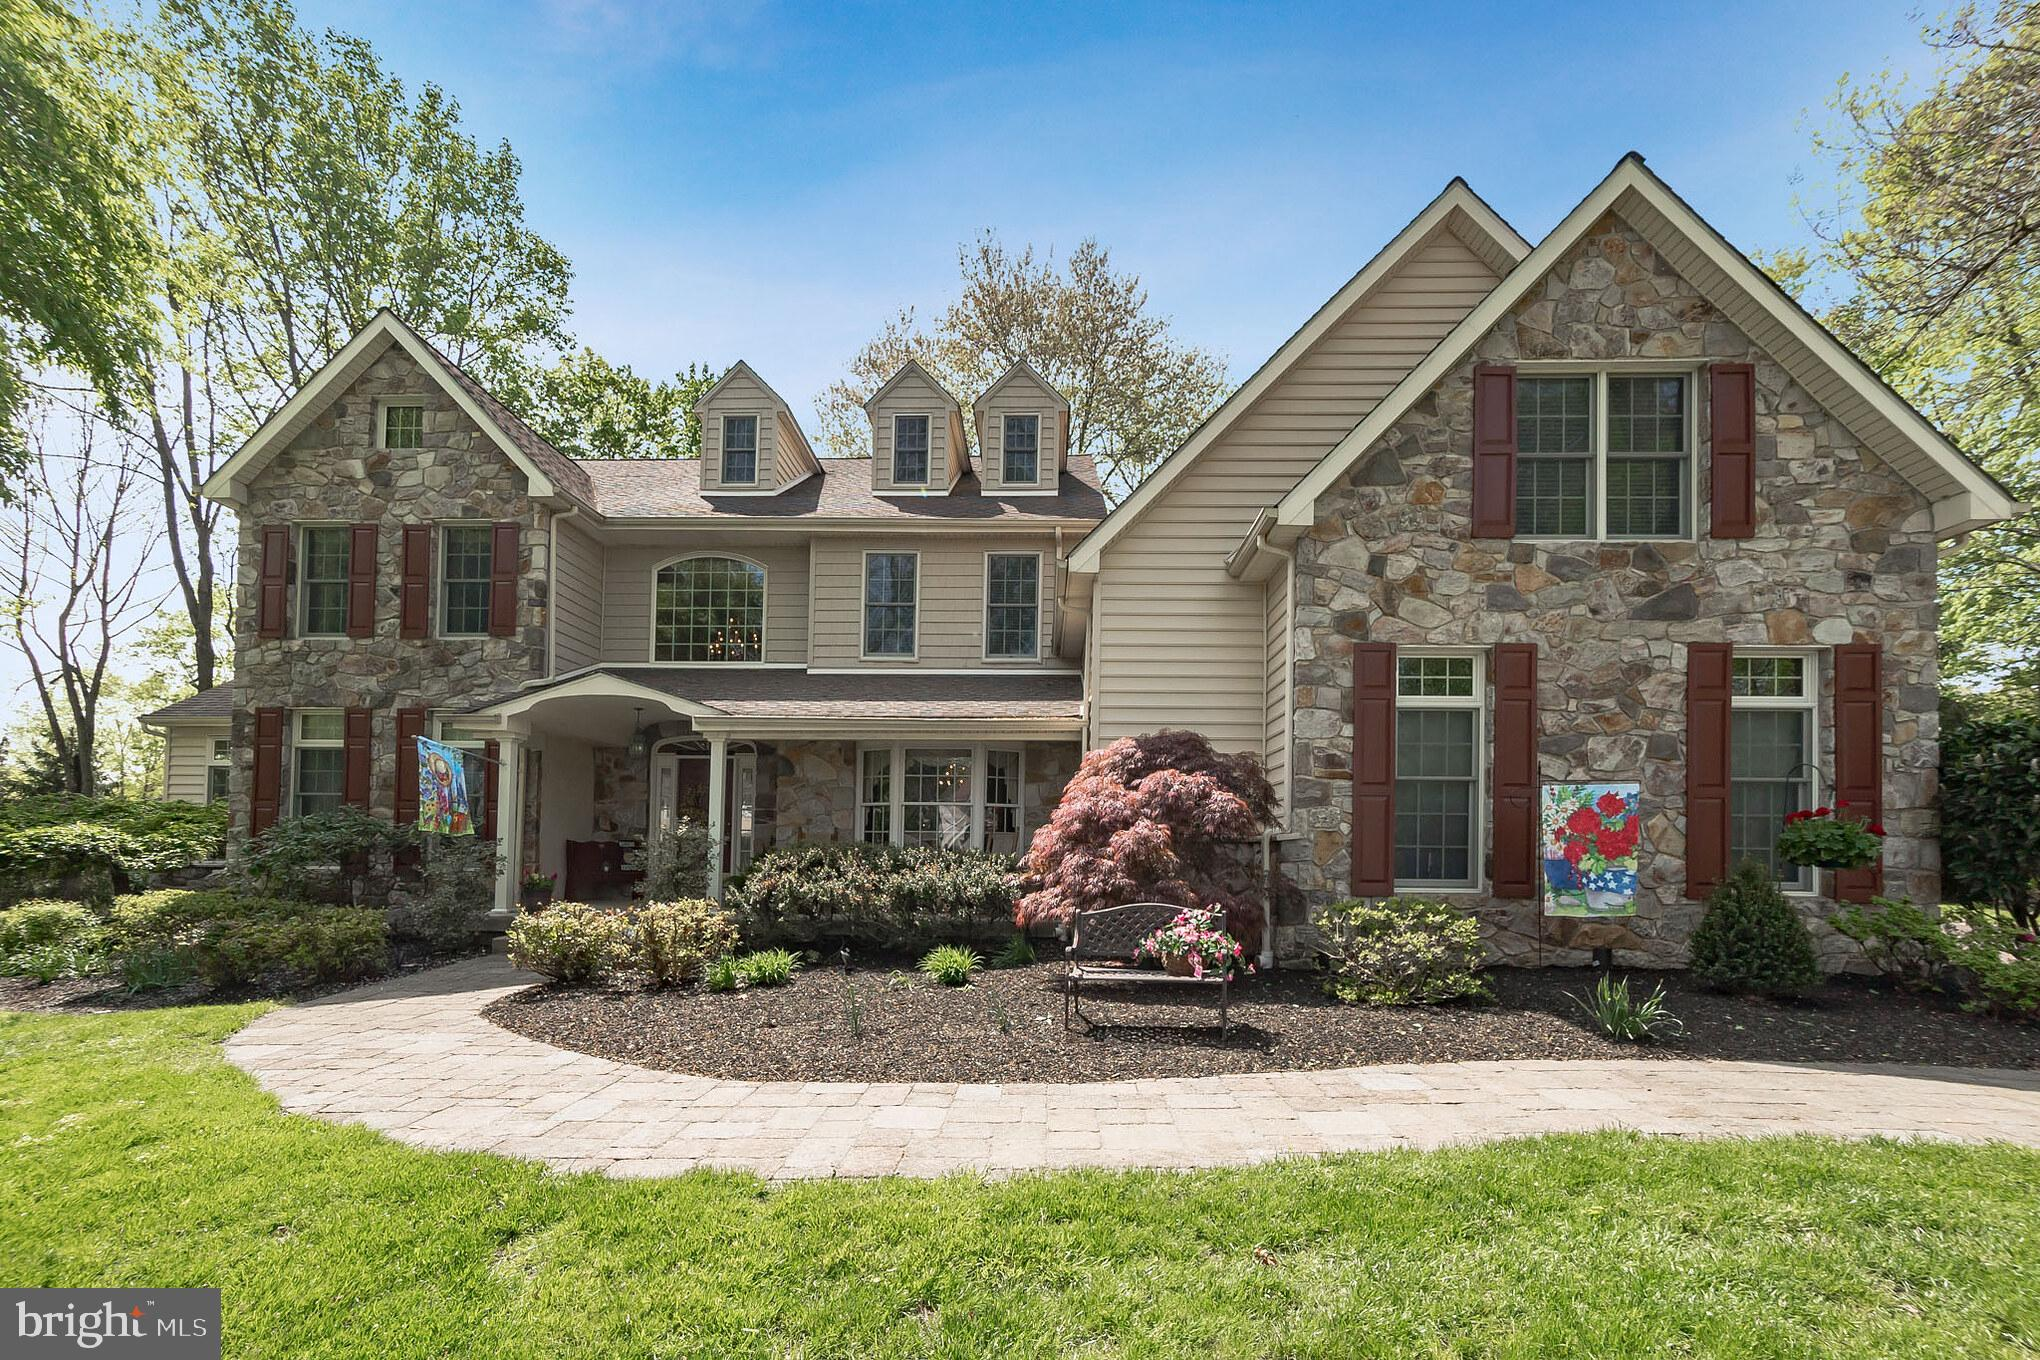 11 FORREST LANE, SPRINGFIELD, PA 19064